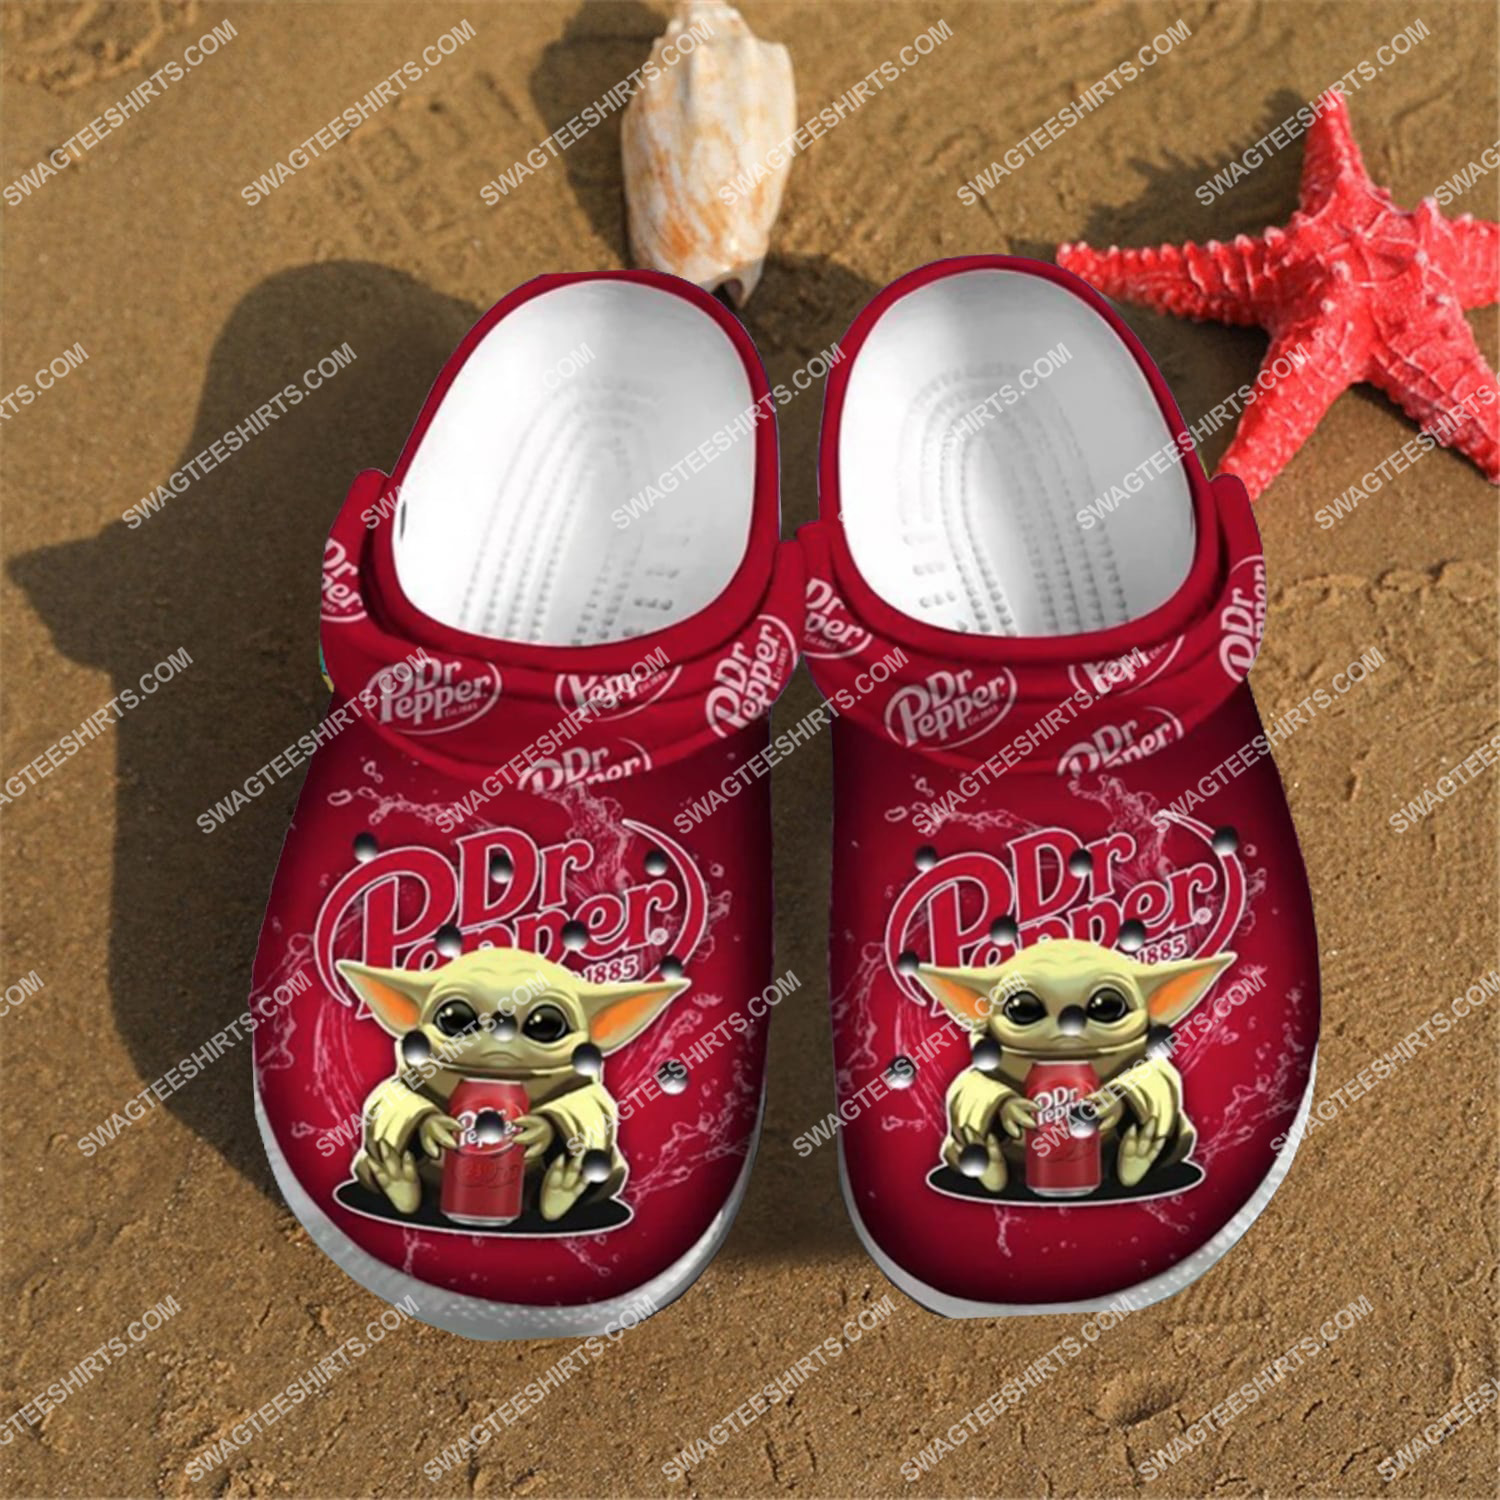 dr pepper and baby yoda all over printed crocs 2(1)